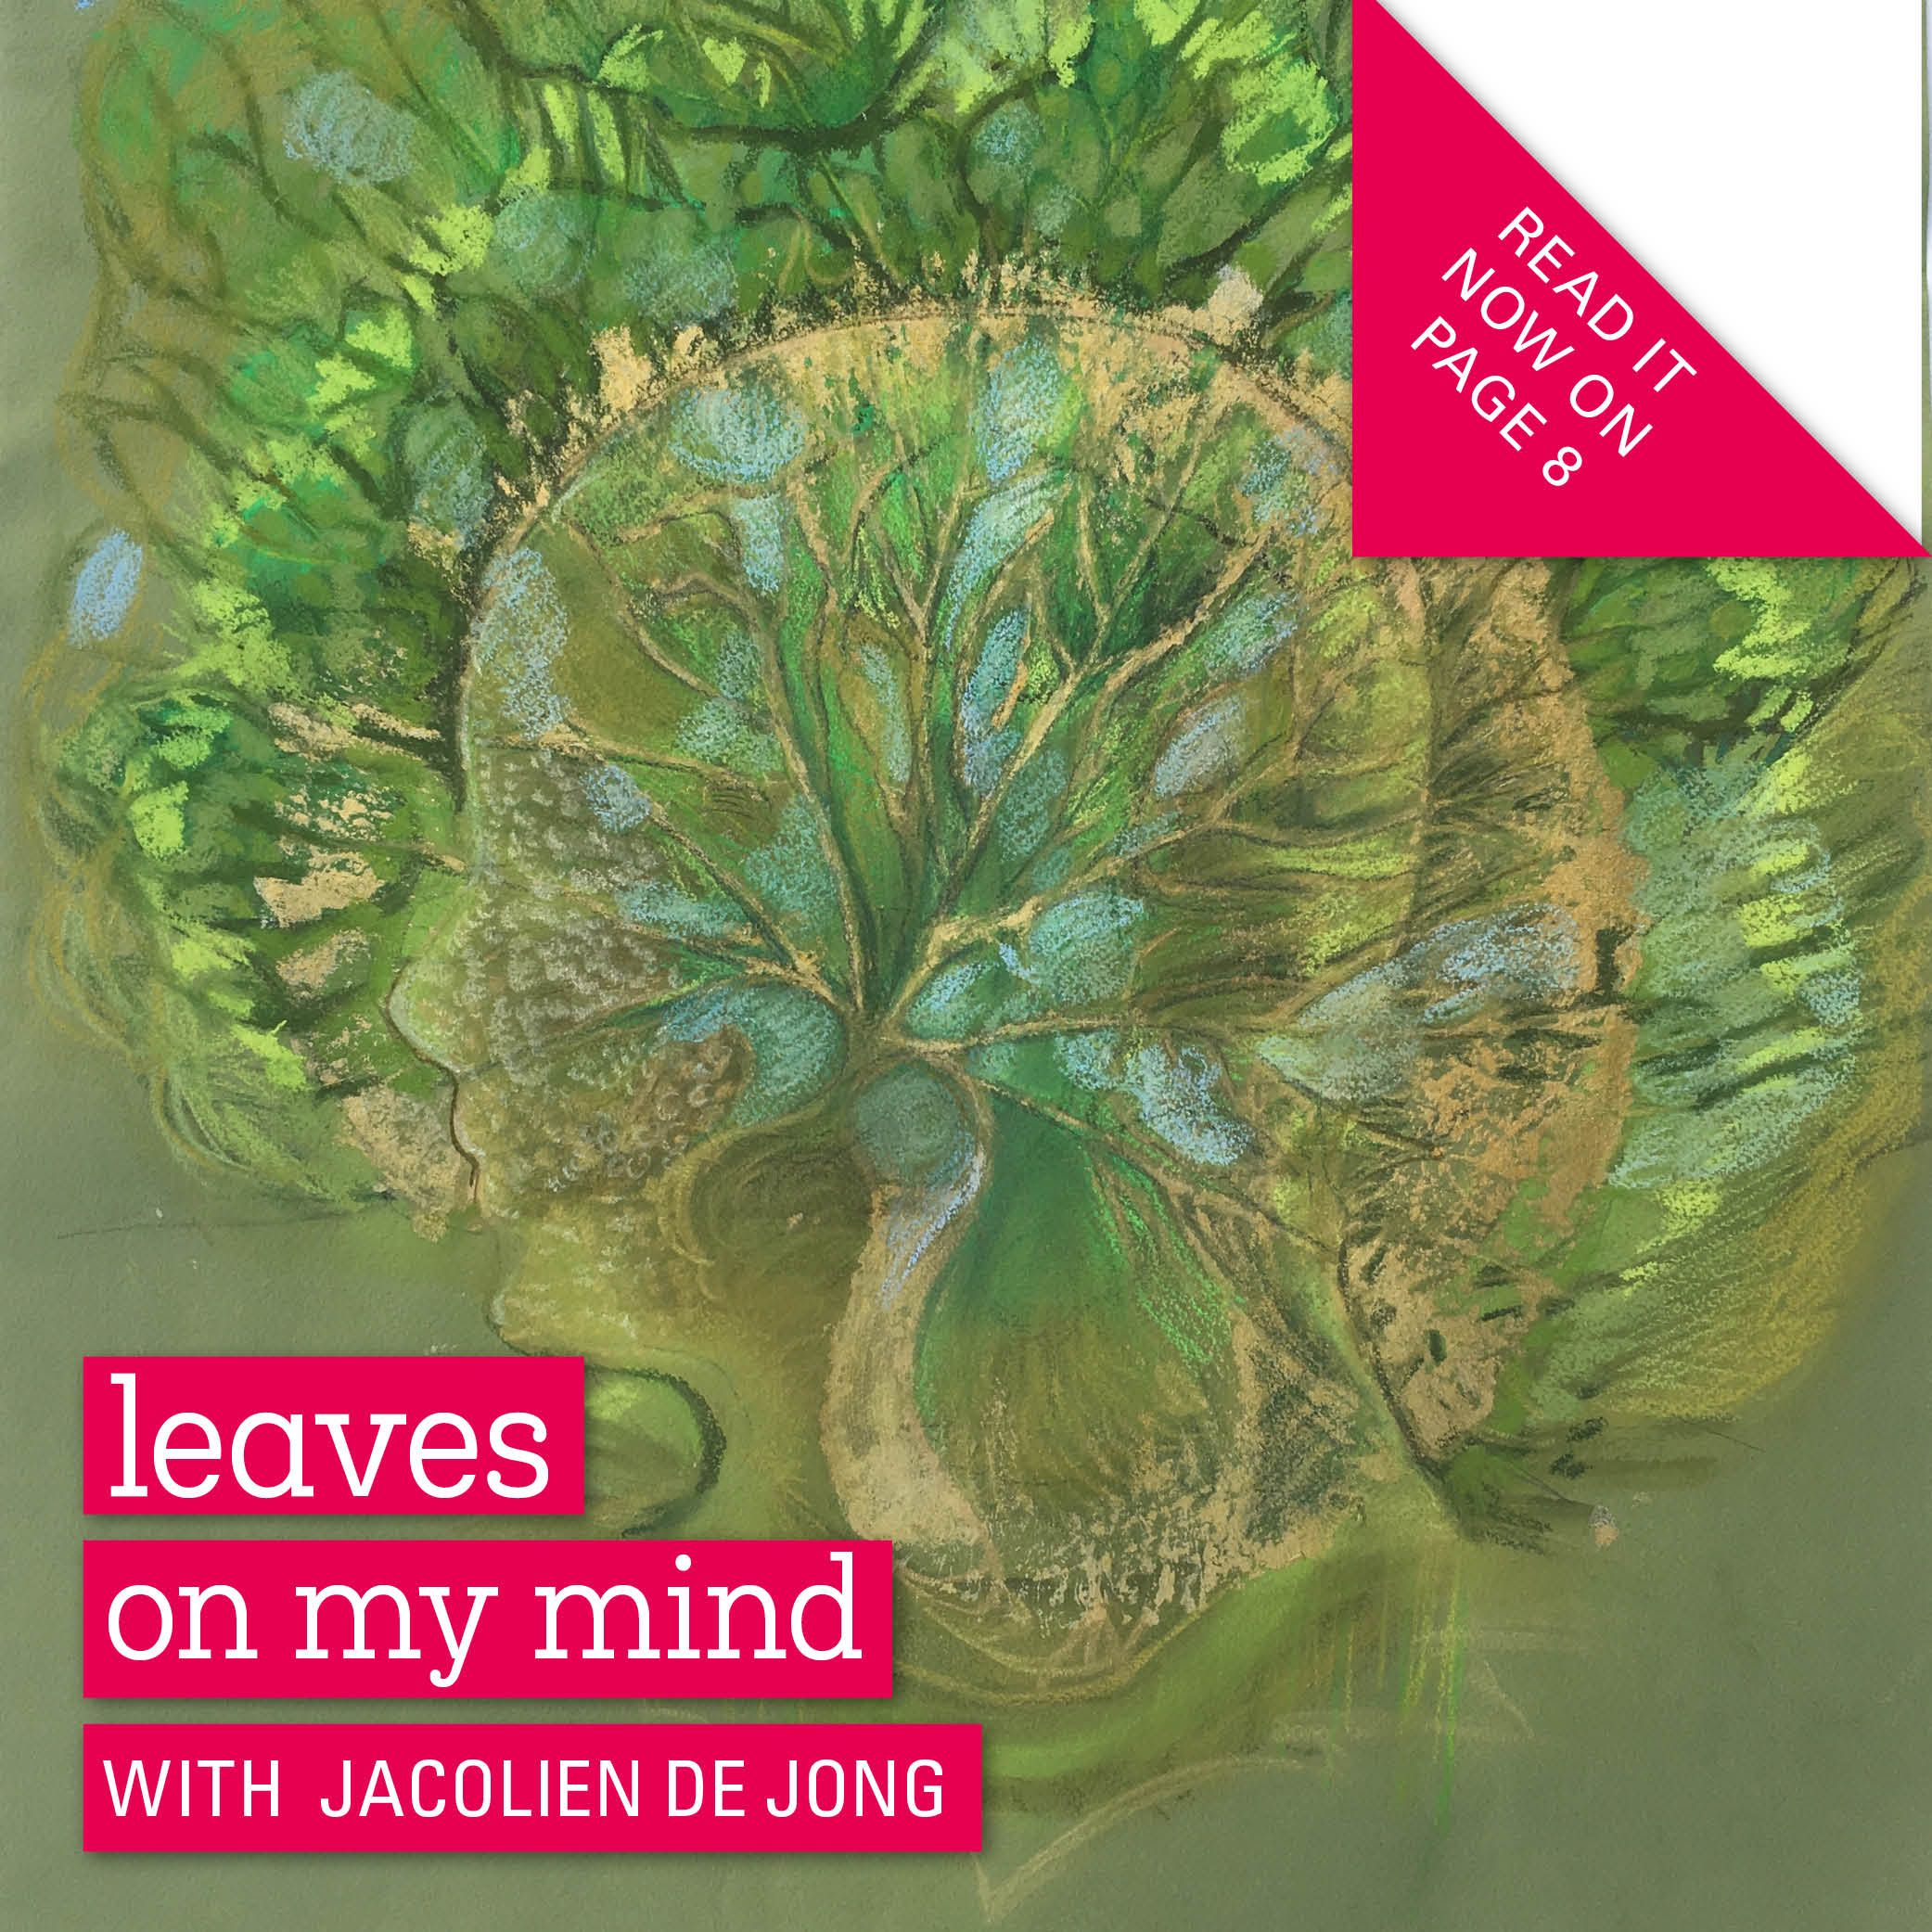 I met Jacolien at the Cultural Sunday in Utrecht. The combination of her art and elements she takes from nature tell a story about human life. Her latest subject is the human mind which she translates with leaves. The soft but true nature of her art is very inviting and makes you look twice.    #drawings #Leavesonmymind #artist #contemporaryart #gallery #artgallery #artcollective #modernart #arte #arts #collecting #artisttowatch #collectart #elements #designerscollective #leaves #trees